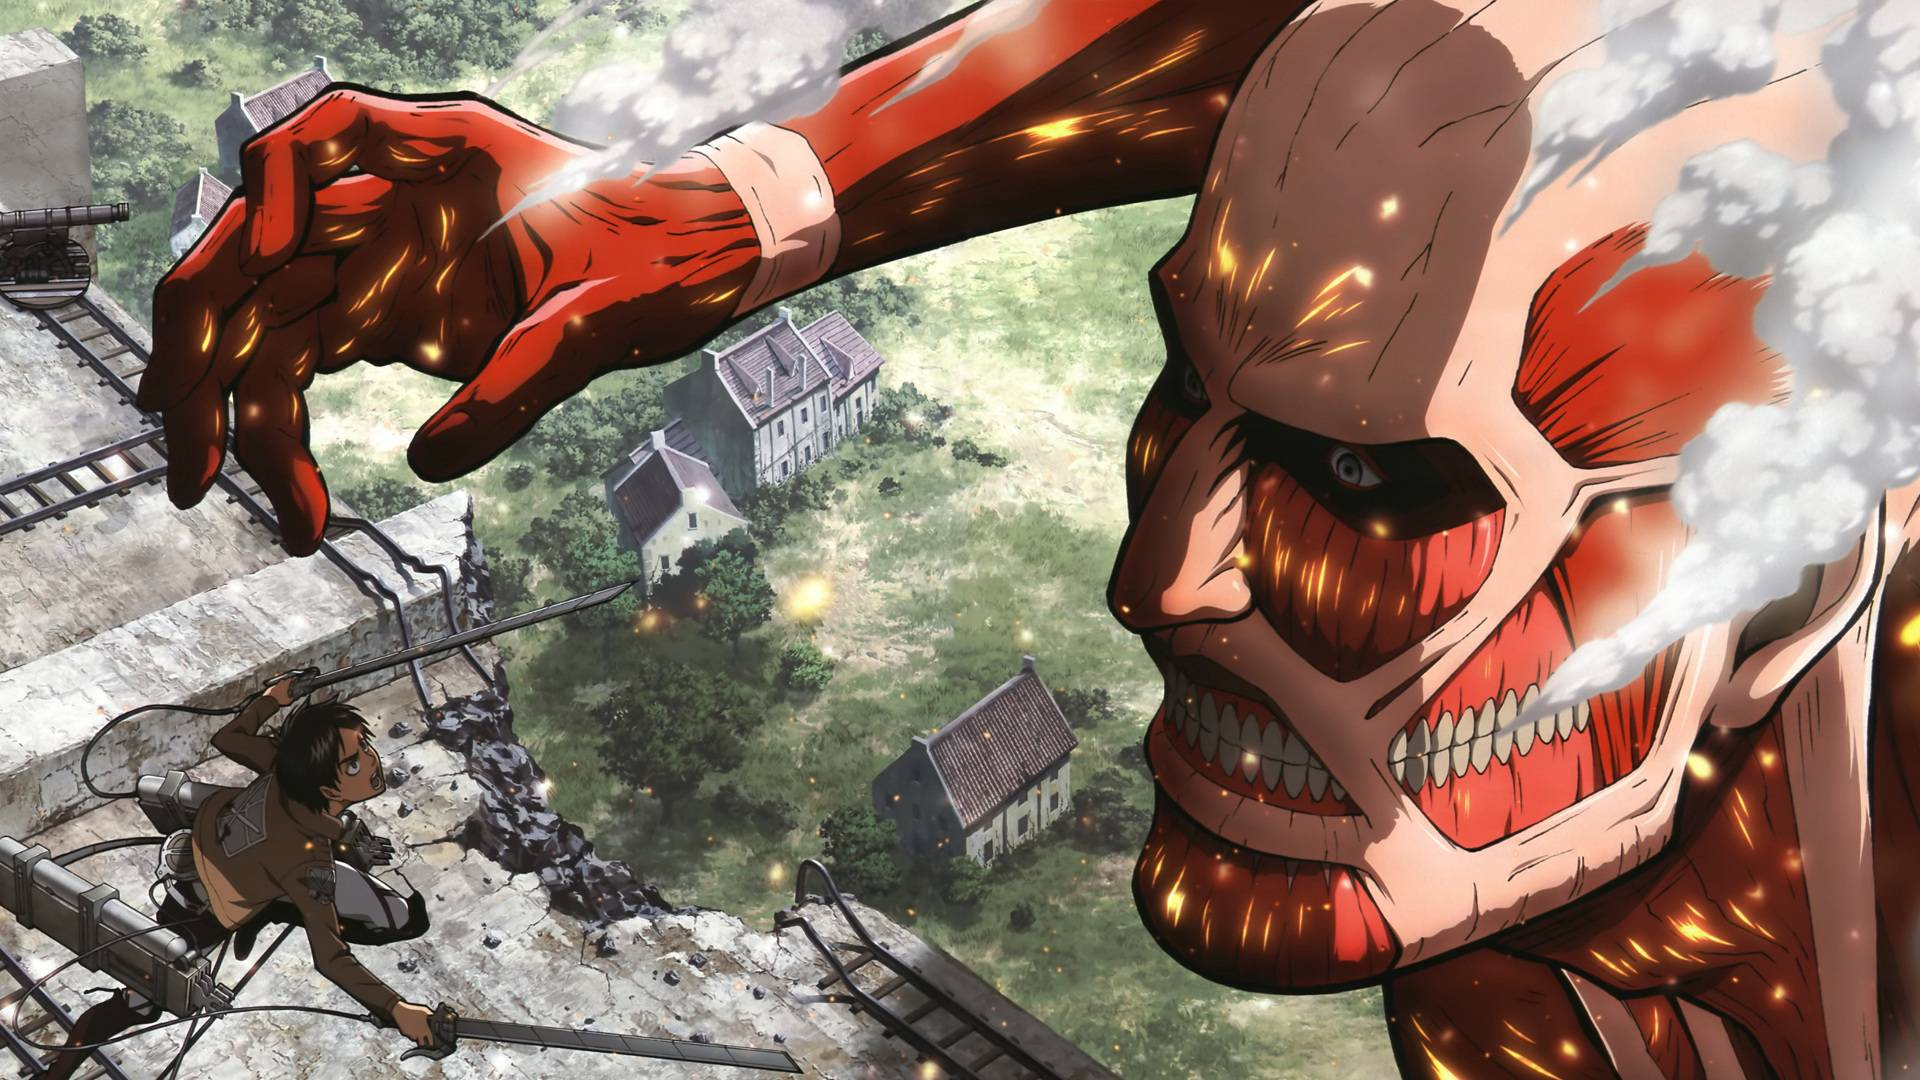 Attack on Titan Manga Attack on Titan is a Manga